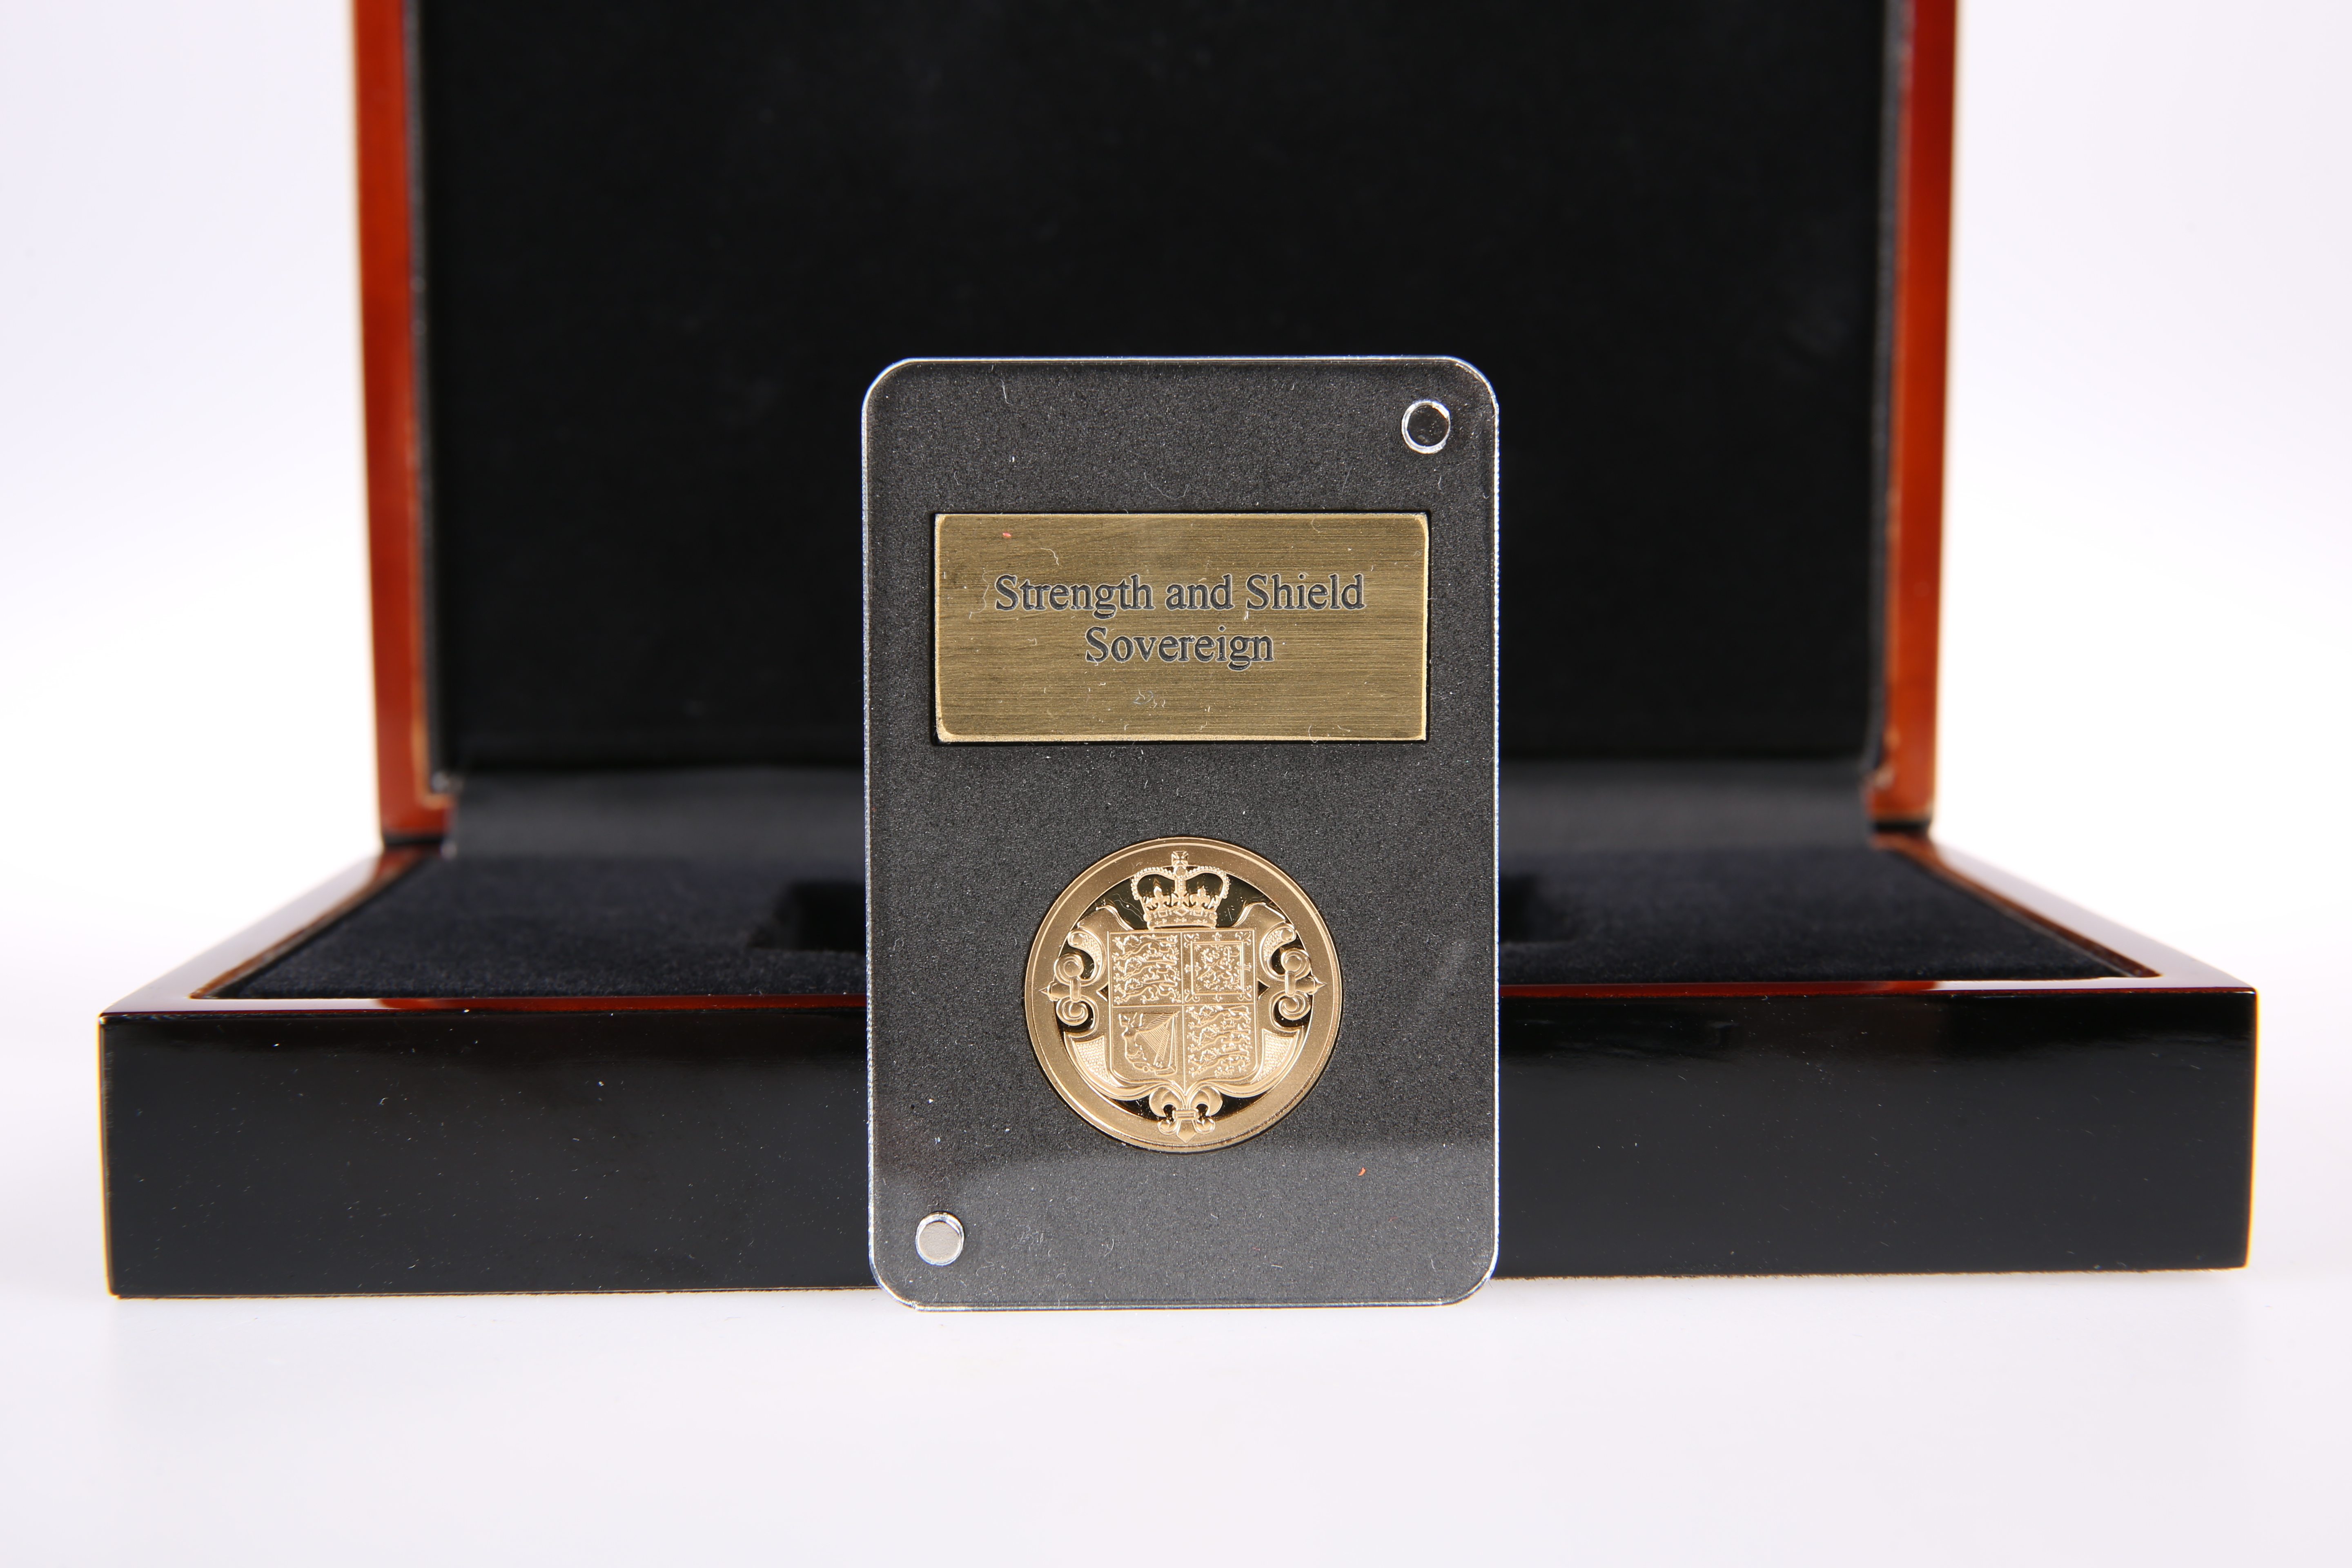 A 2017 STRENGTH AND SHIELD SOVEREIGN, in capsule, within a presentation box and outer card box.